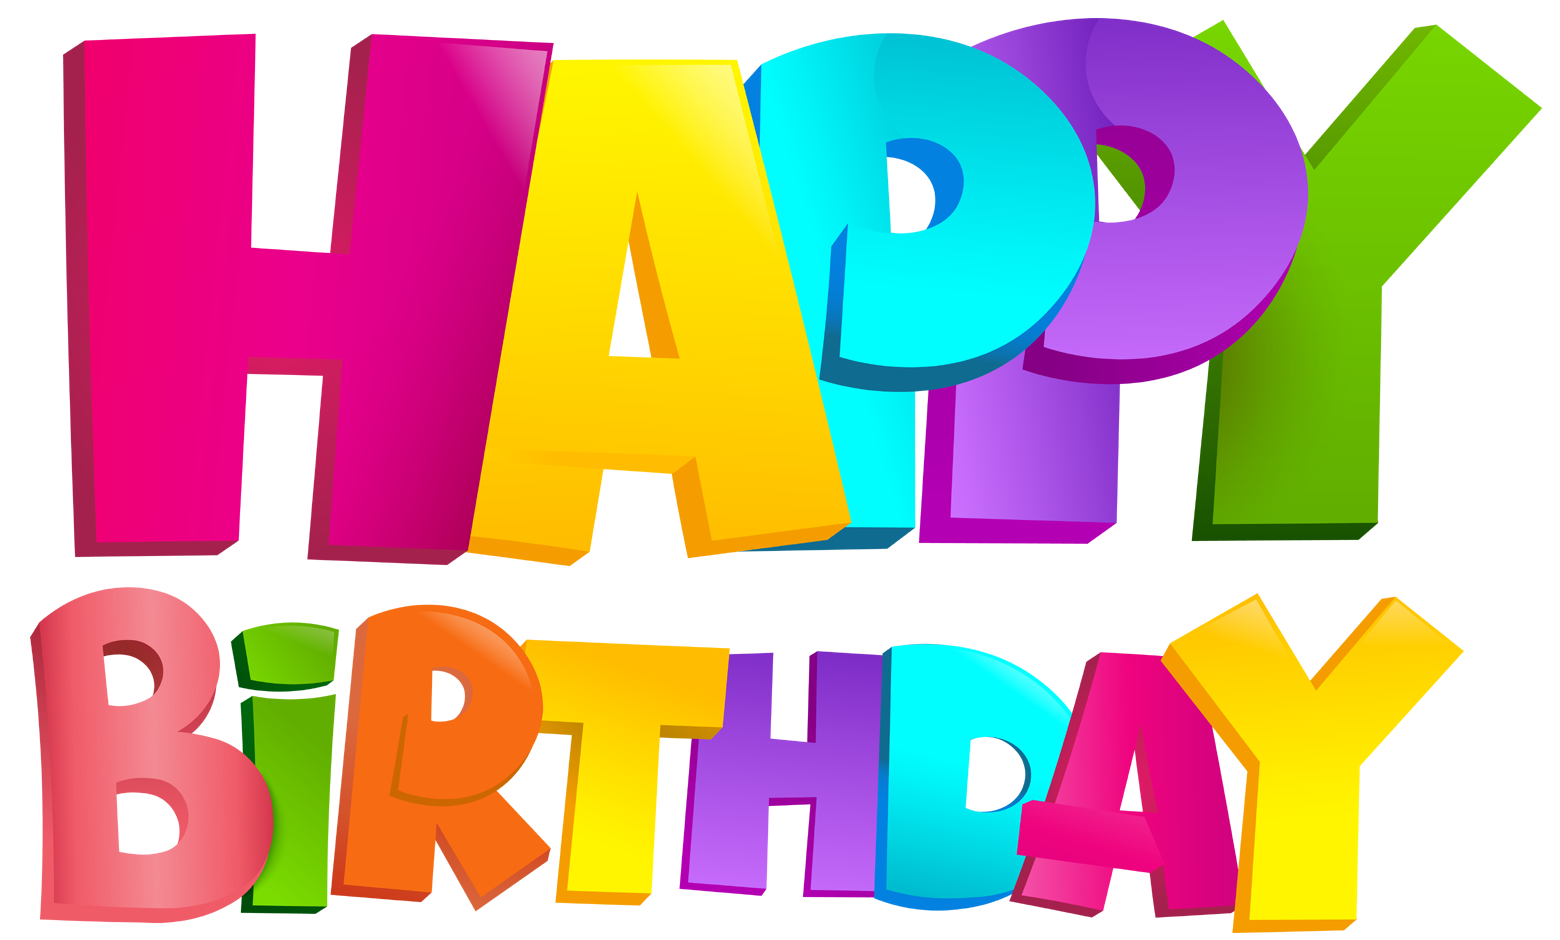 clipart-design-happy-birthday-10.png